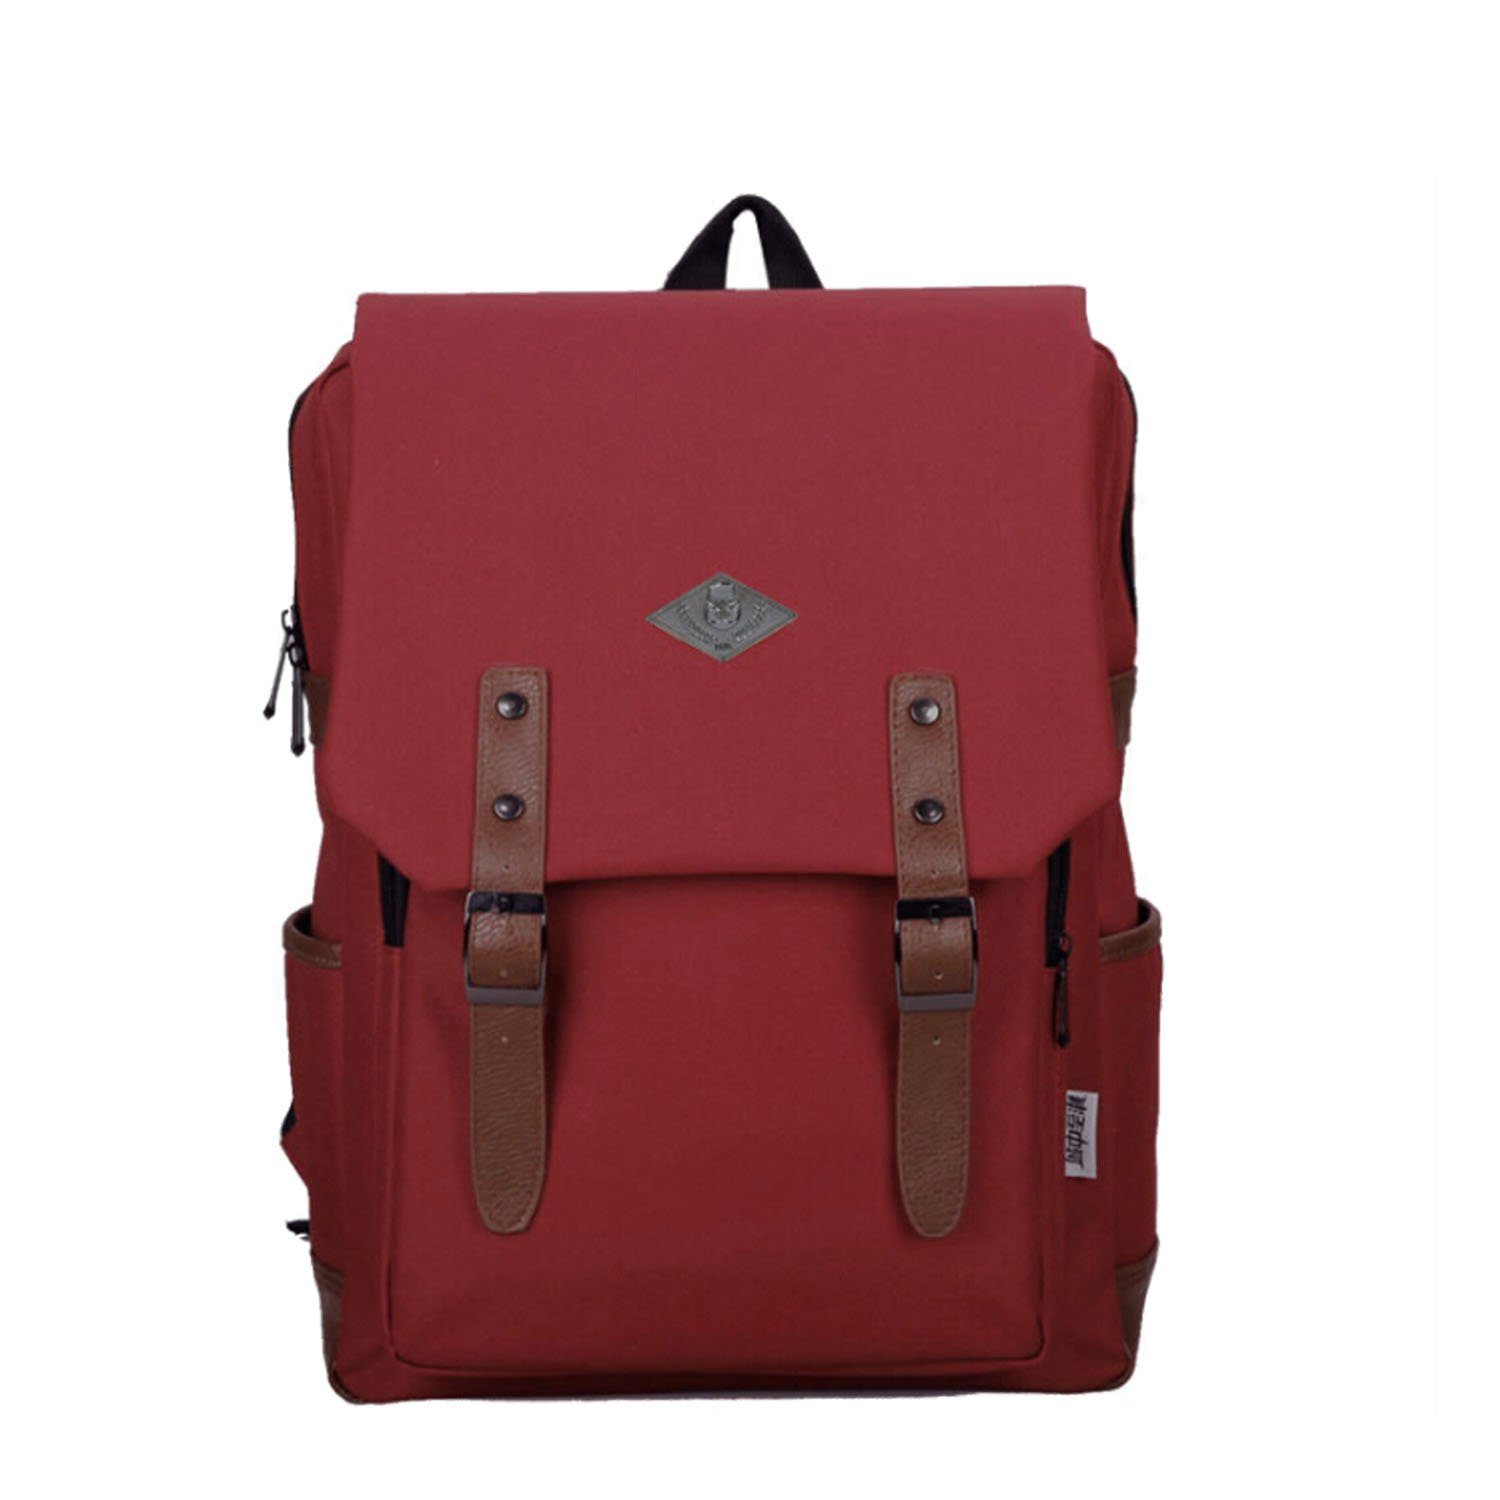 Bao Core BXT Fashionable Recreation British Style Durable Canvas Ladle Traveling Laptop School Bag Backpack Red